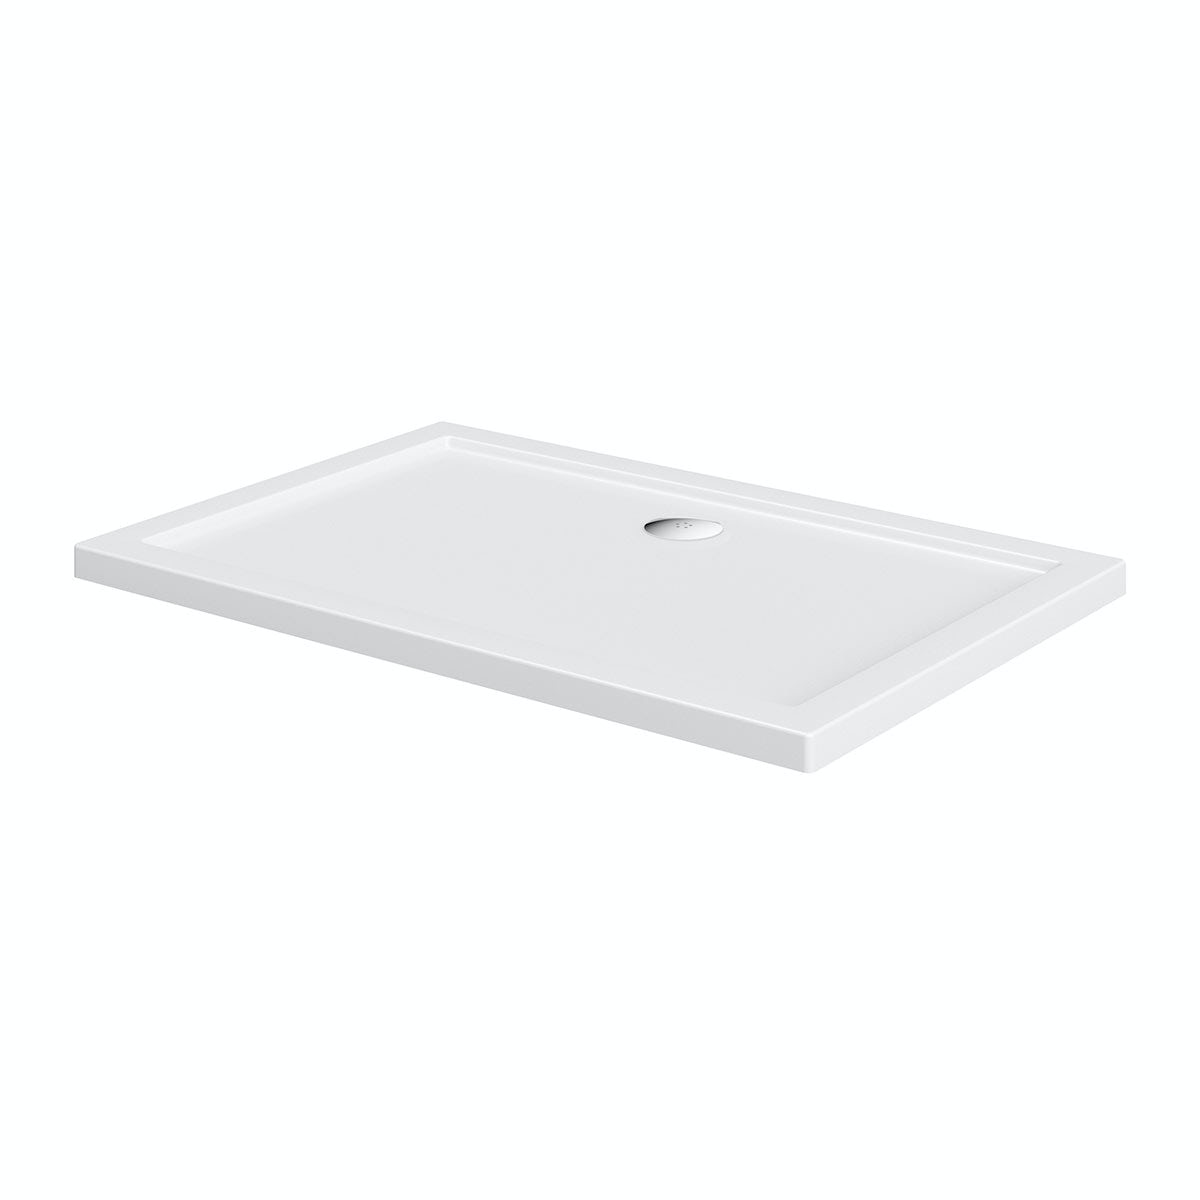 Rectangular Stone Shower Tray Up To 1200mm